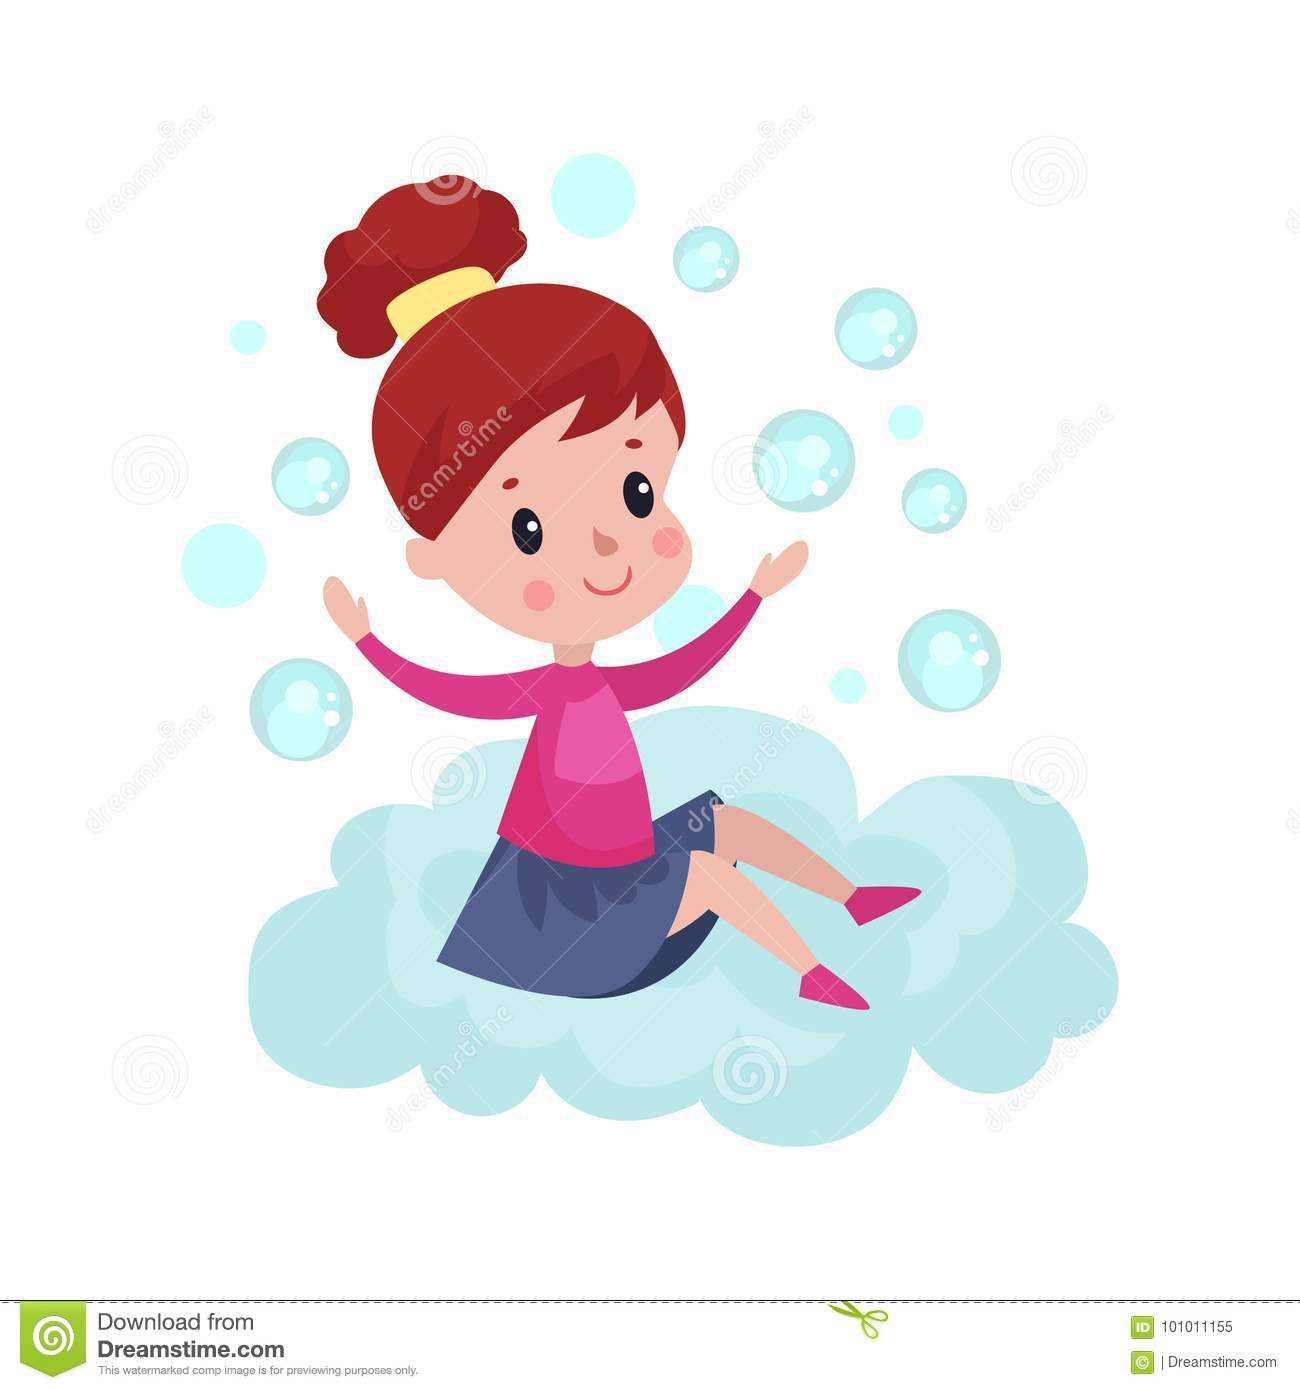 Sweet little girl sitting on a cloud and playing with soap bubbles, kid fantasizes and dreams cartoon Illustration